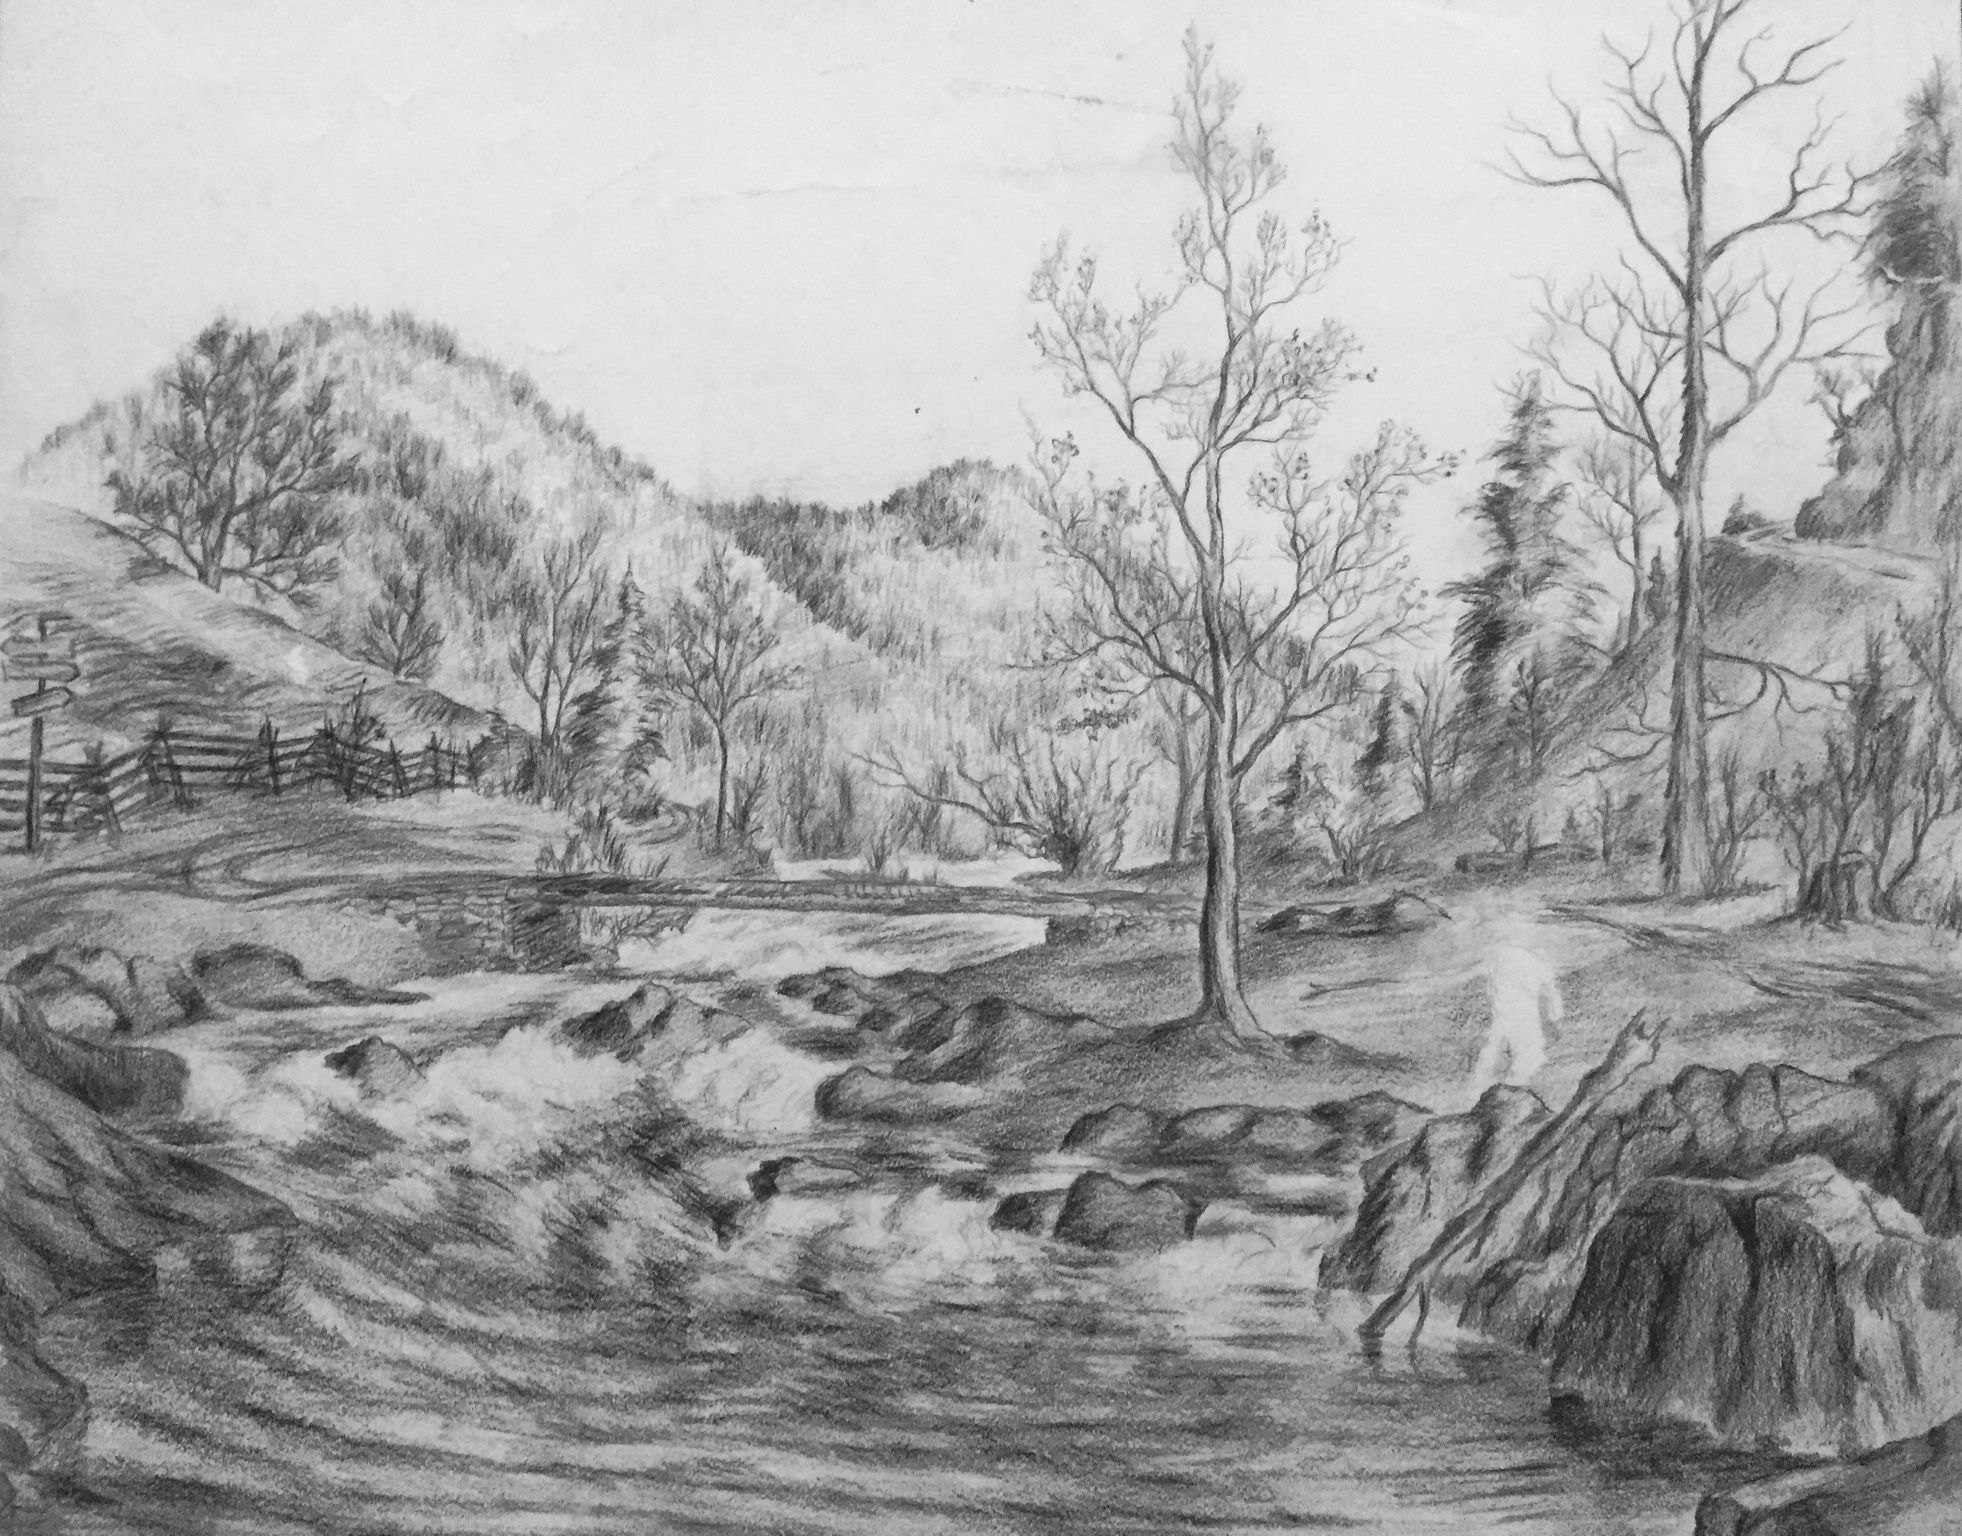 Mountain river original unfinished pencil drawing on paper 1930s